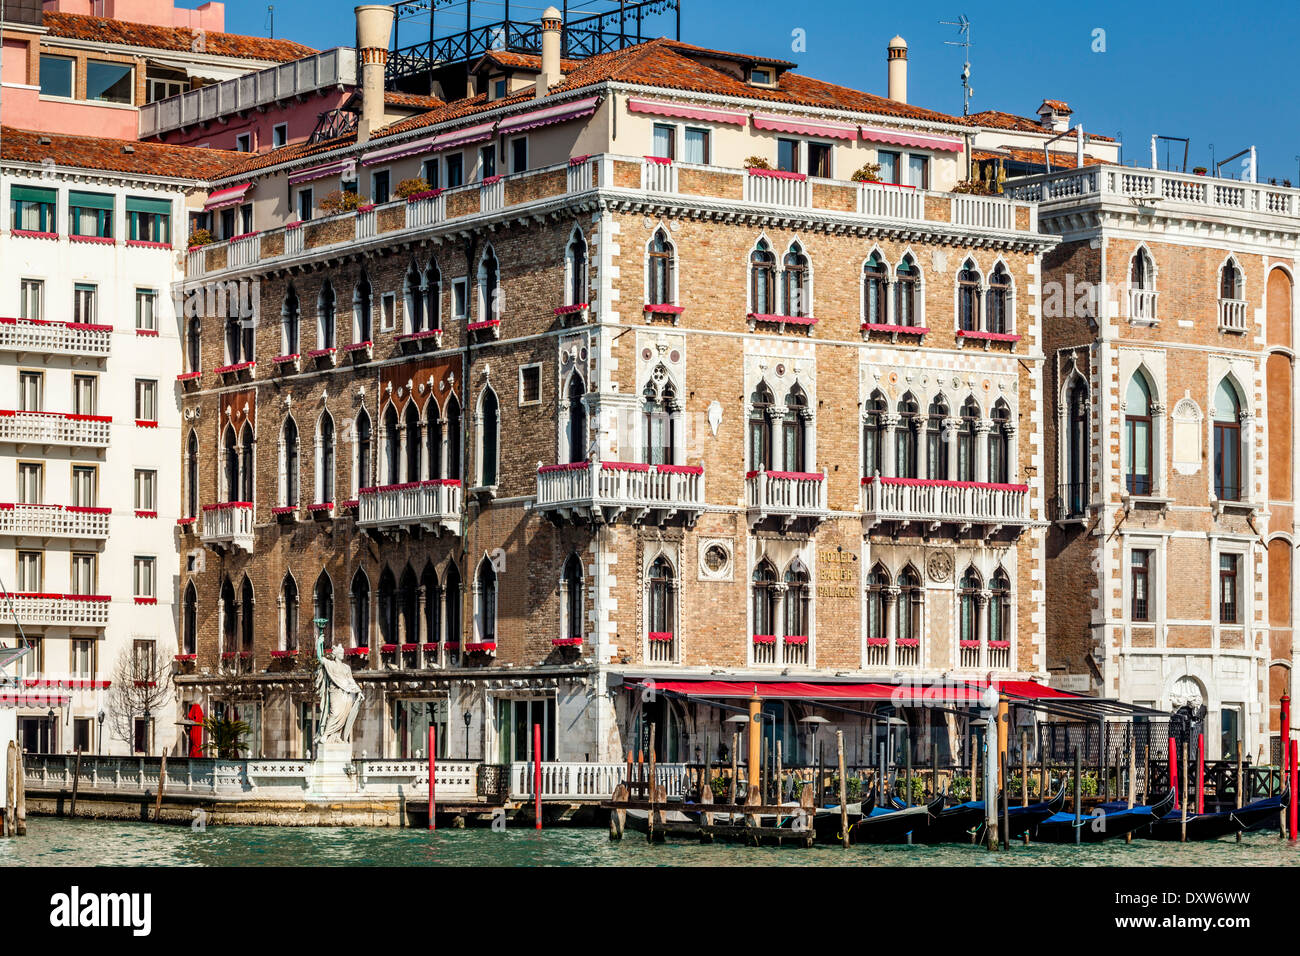 hotel bauer palazzo der canal grande venedig italien stockfoto bild 68166389 alamy. Black Bedroom Furniture Sets. Home Design Ideas